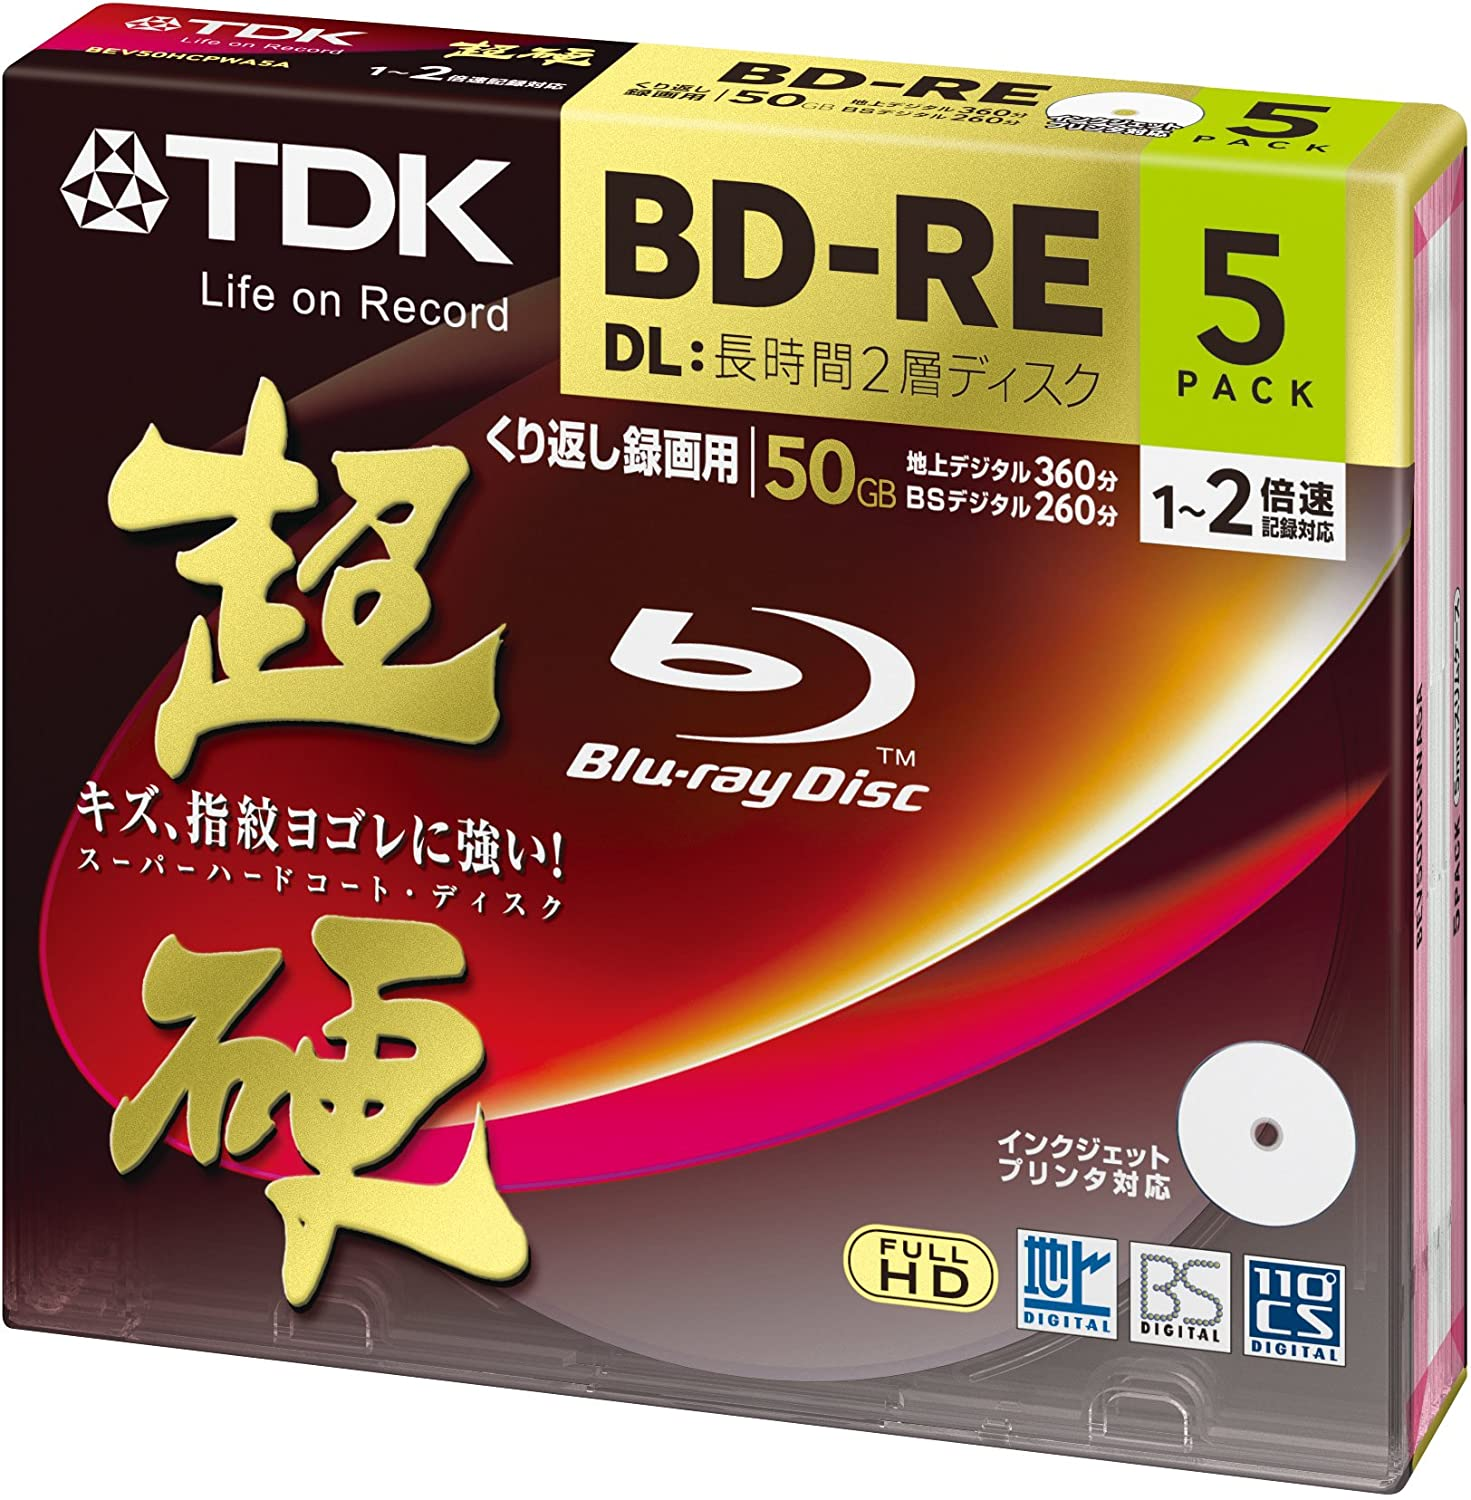 TDK 50GB 2X BD-RE DL Rewritable Printable Blu-ray Disc with Jewel Case (5-Pack) BEV50HCPWA5A